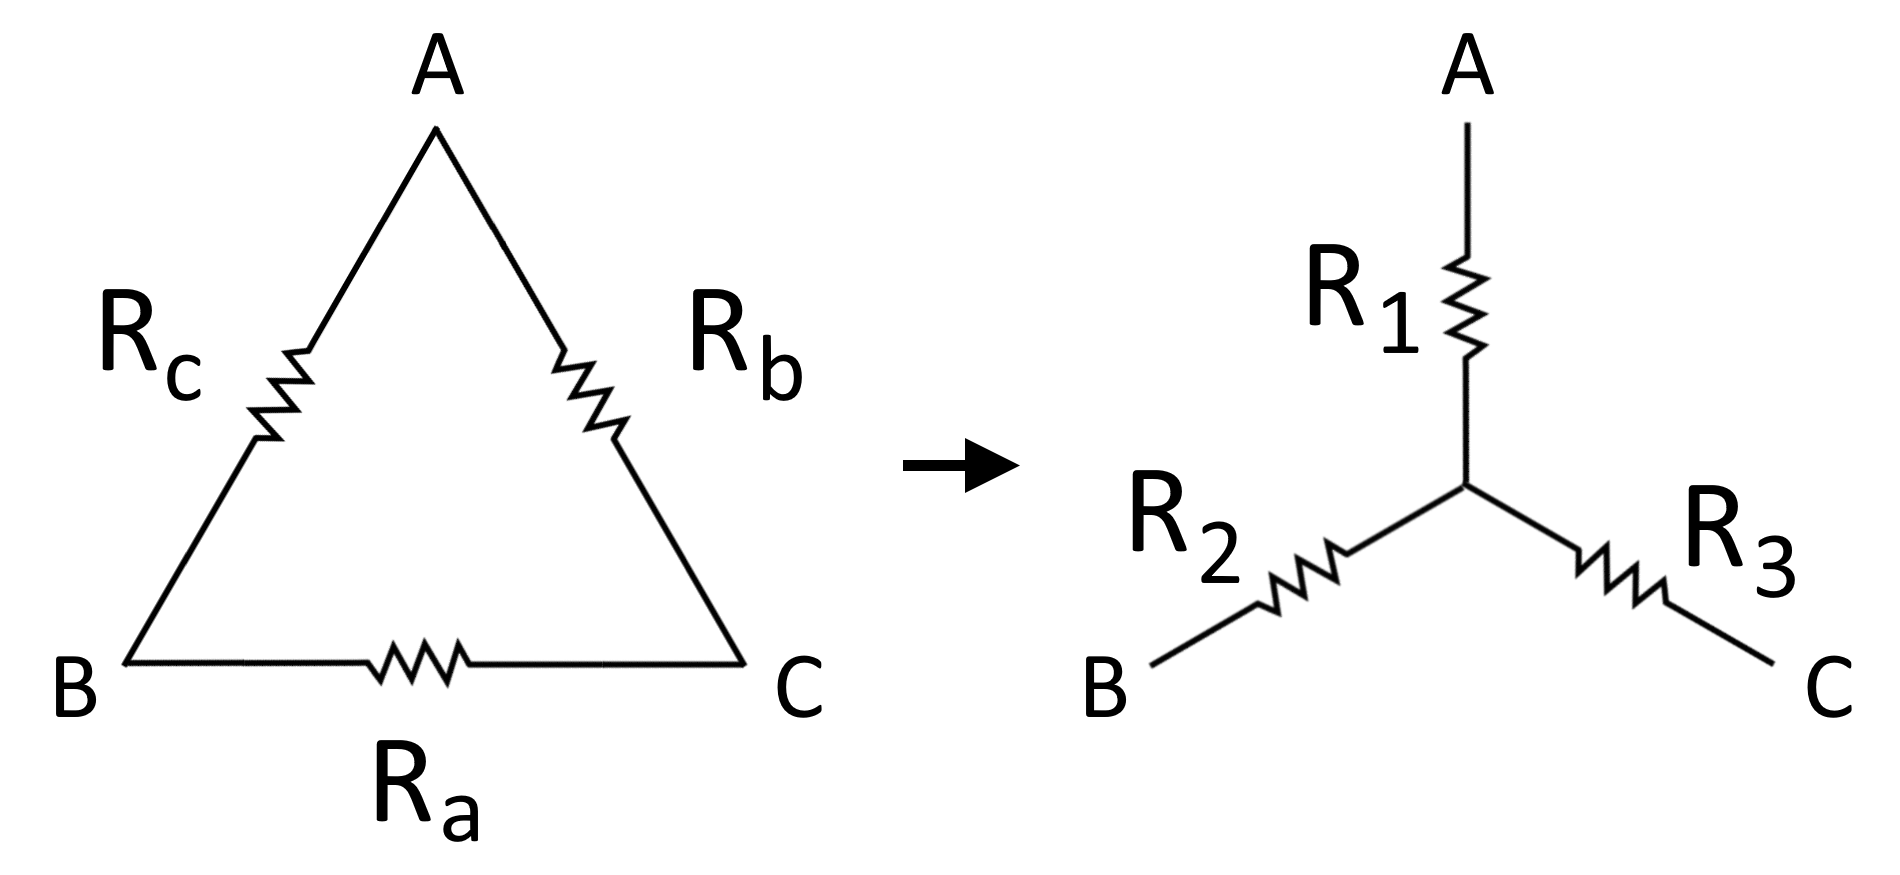 Illustration of a delta network with labels for each resistor and nodes, as well as the converted equivalent wye network with labels for each new resistor.